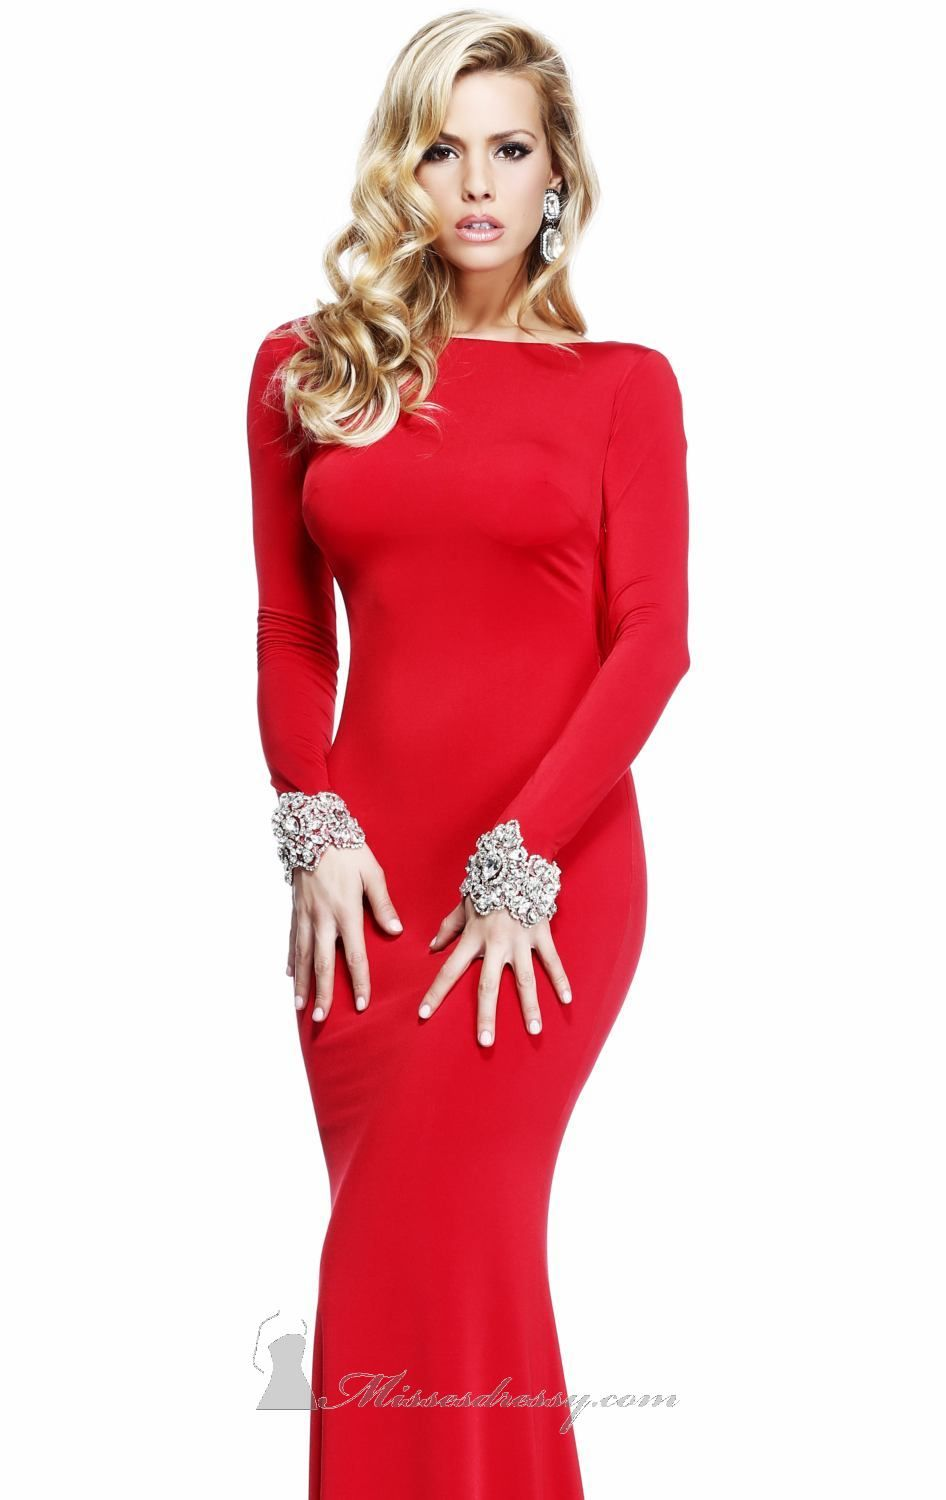 Red dress long sleeves